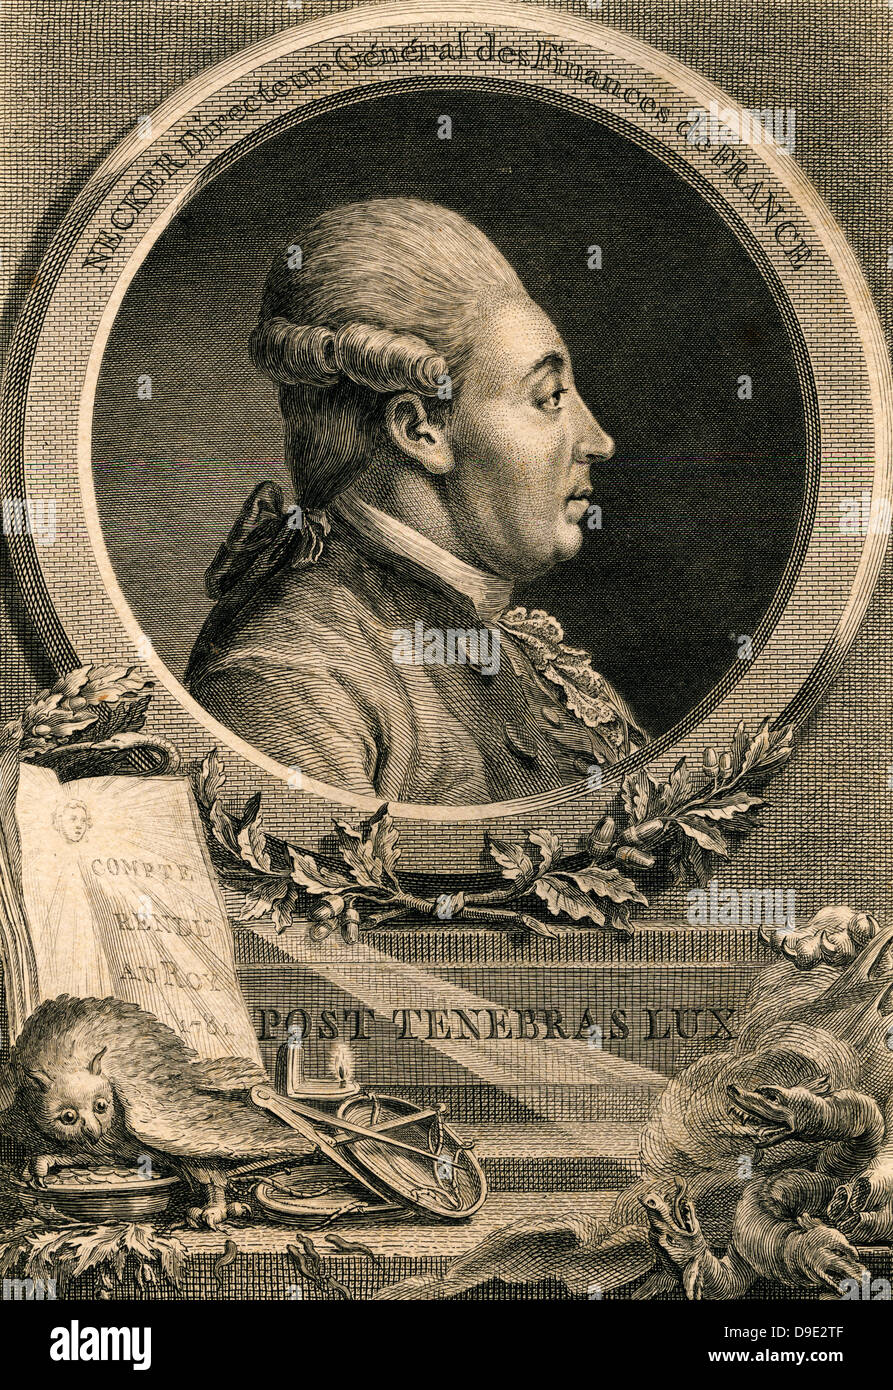 Jacques Necker (1732-1804) French financier and statesman. - Stock Image